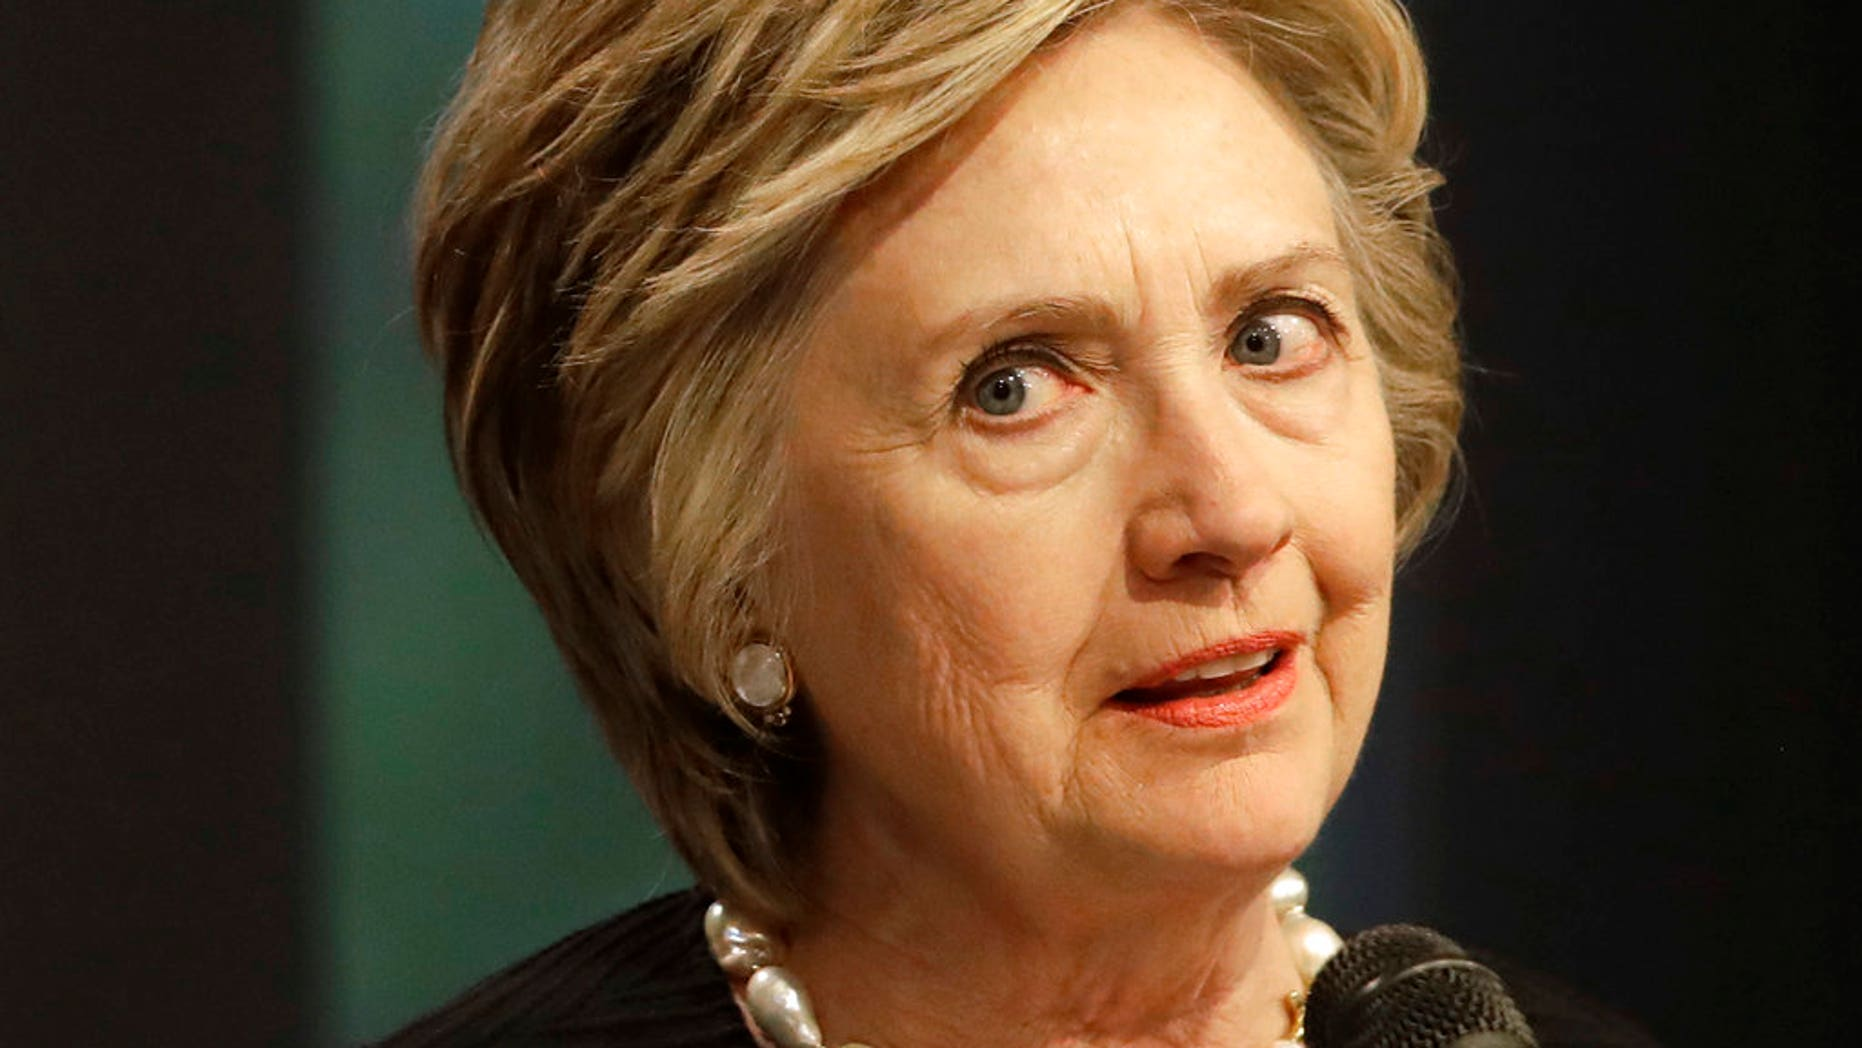 Former Secretary of State Hillary Clinton speaks at a fundraiser for the Elijah Cummings Youth Program in Israel in Baltimore, Monday, June 5, 2017. (AP Photo/Patrick Semansky)